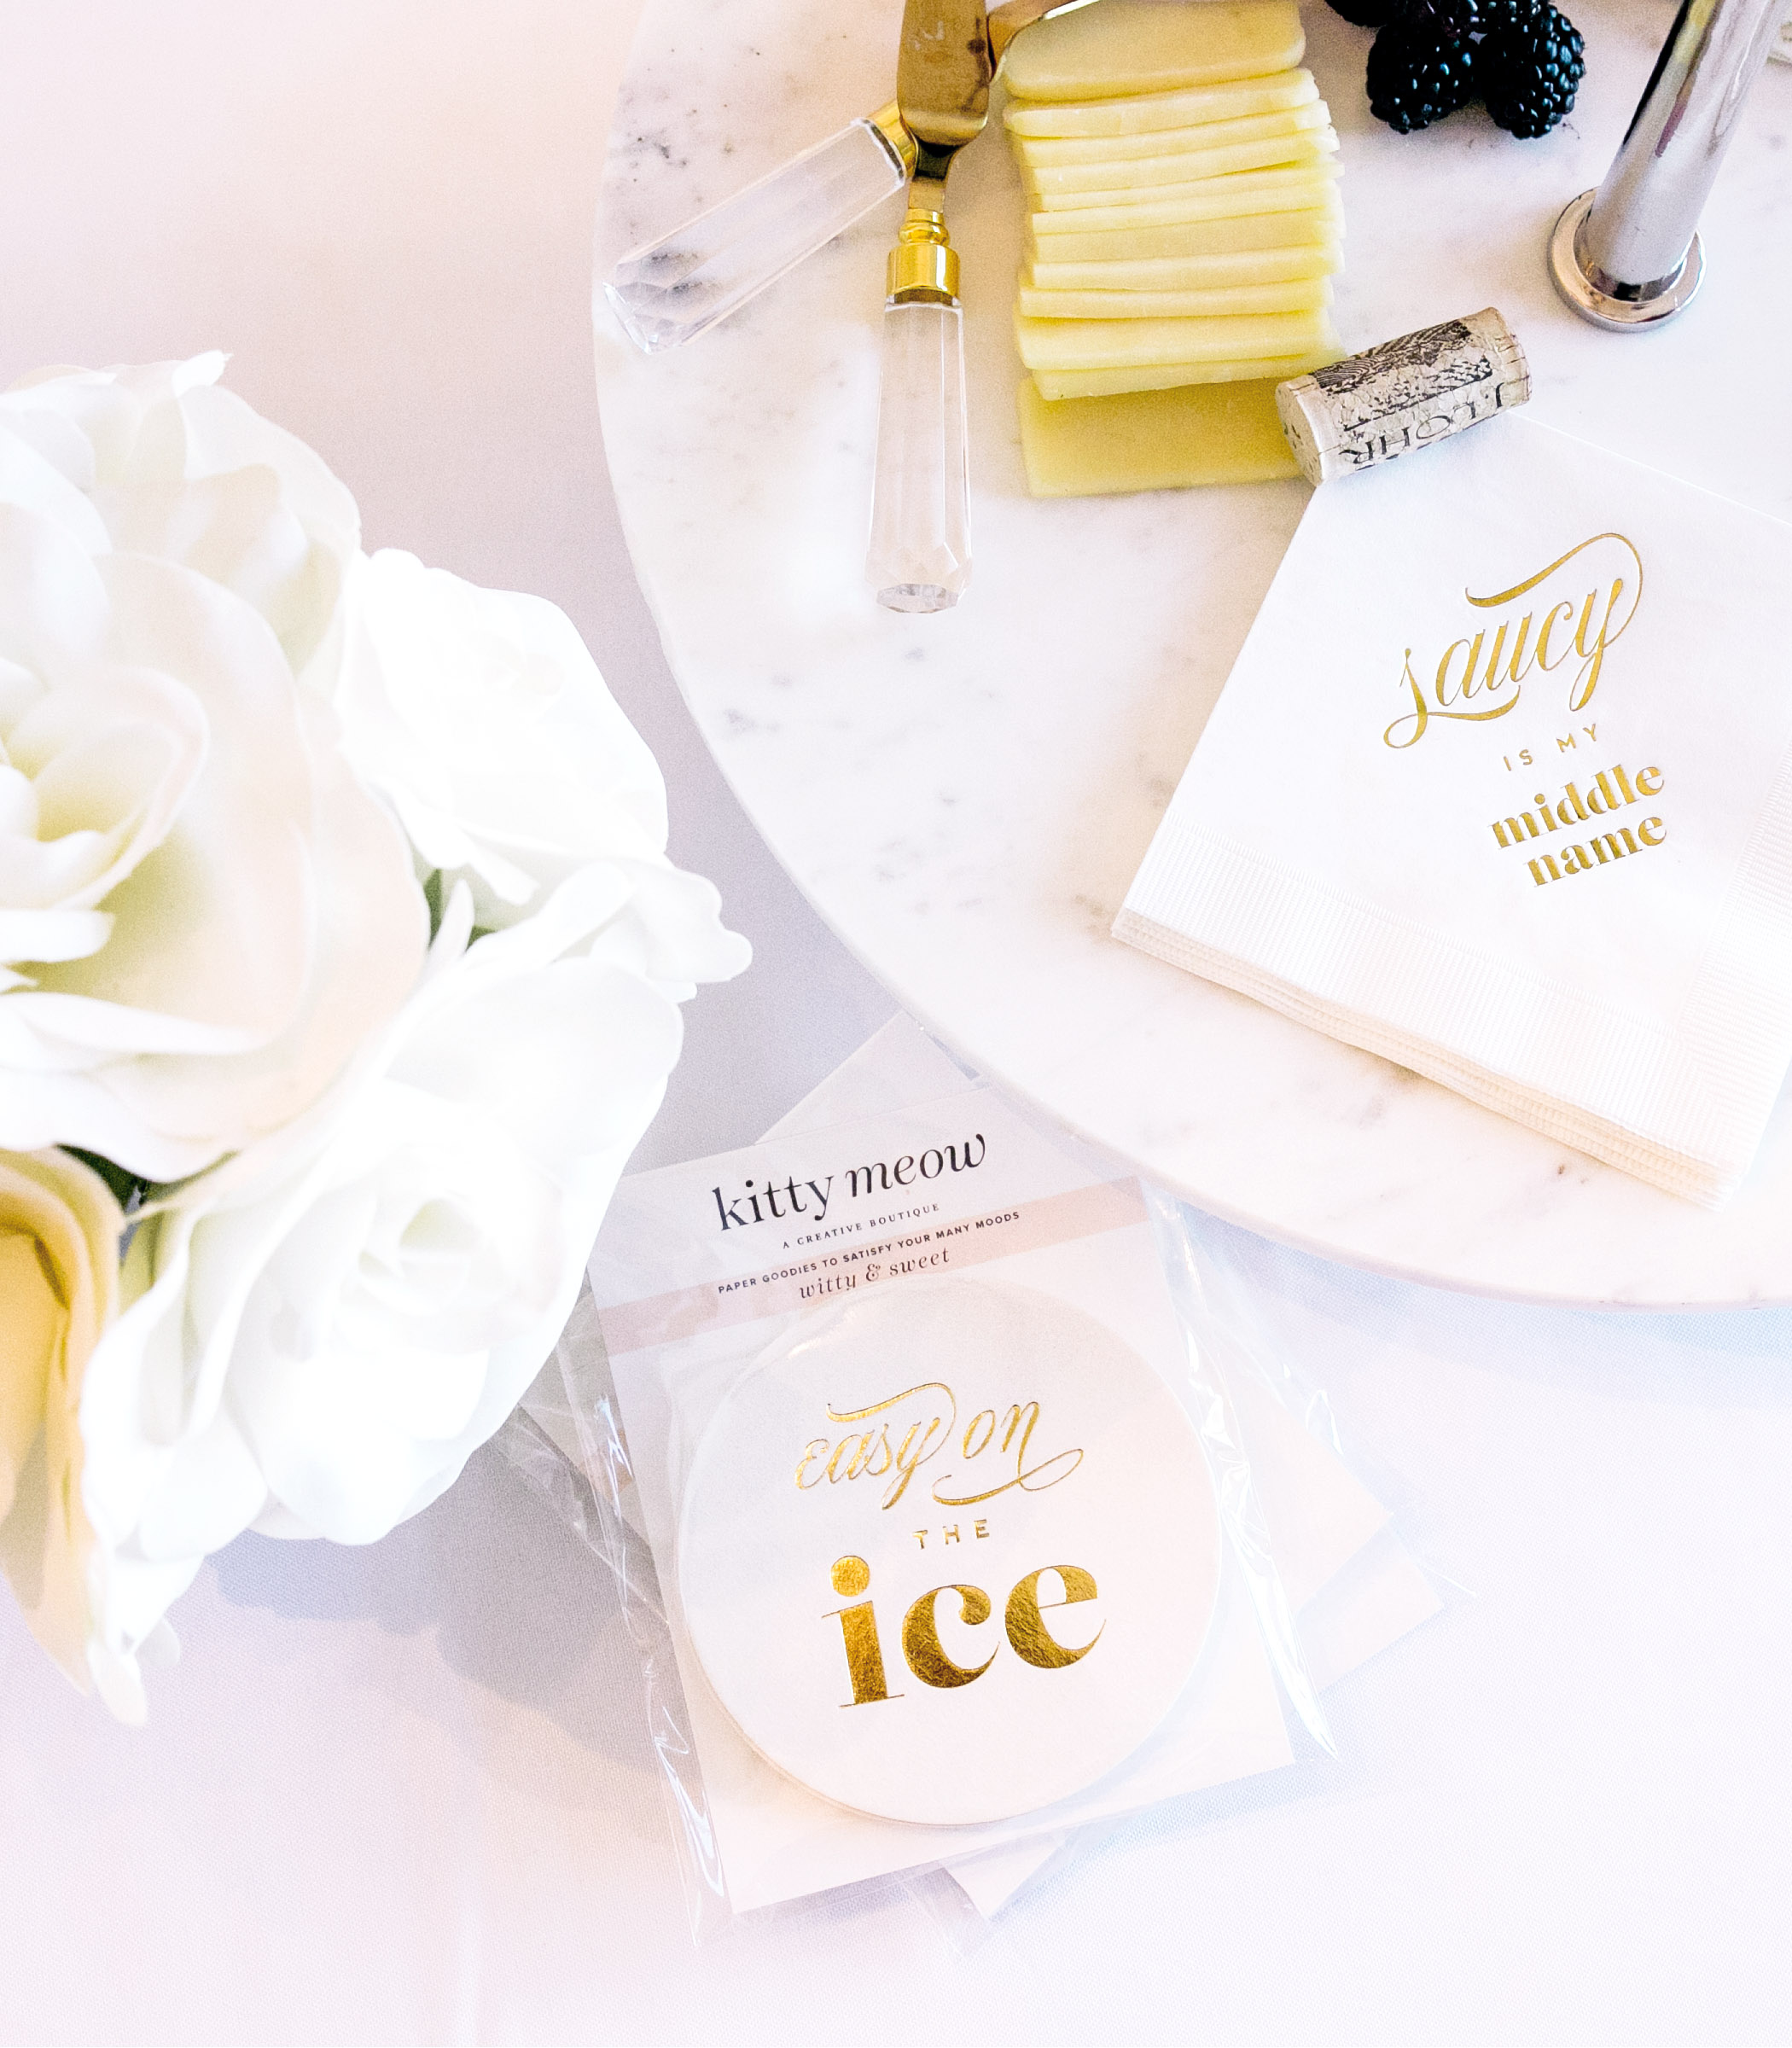 Gold-Foil-Coasters_Party-Products_Easy-on-the-Ice_3.jpg